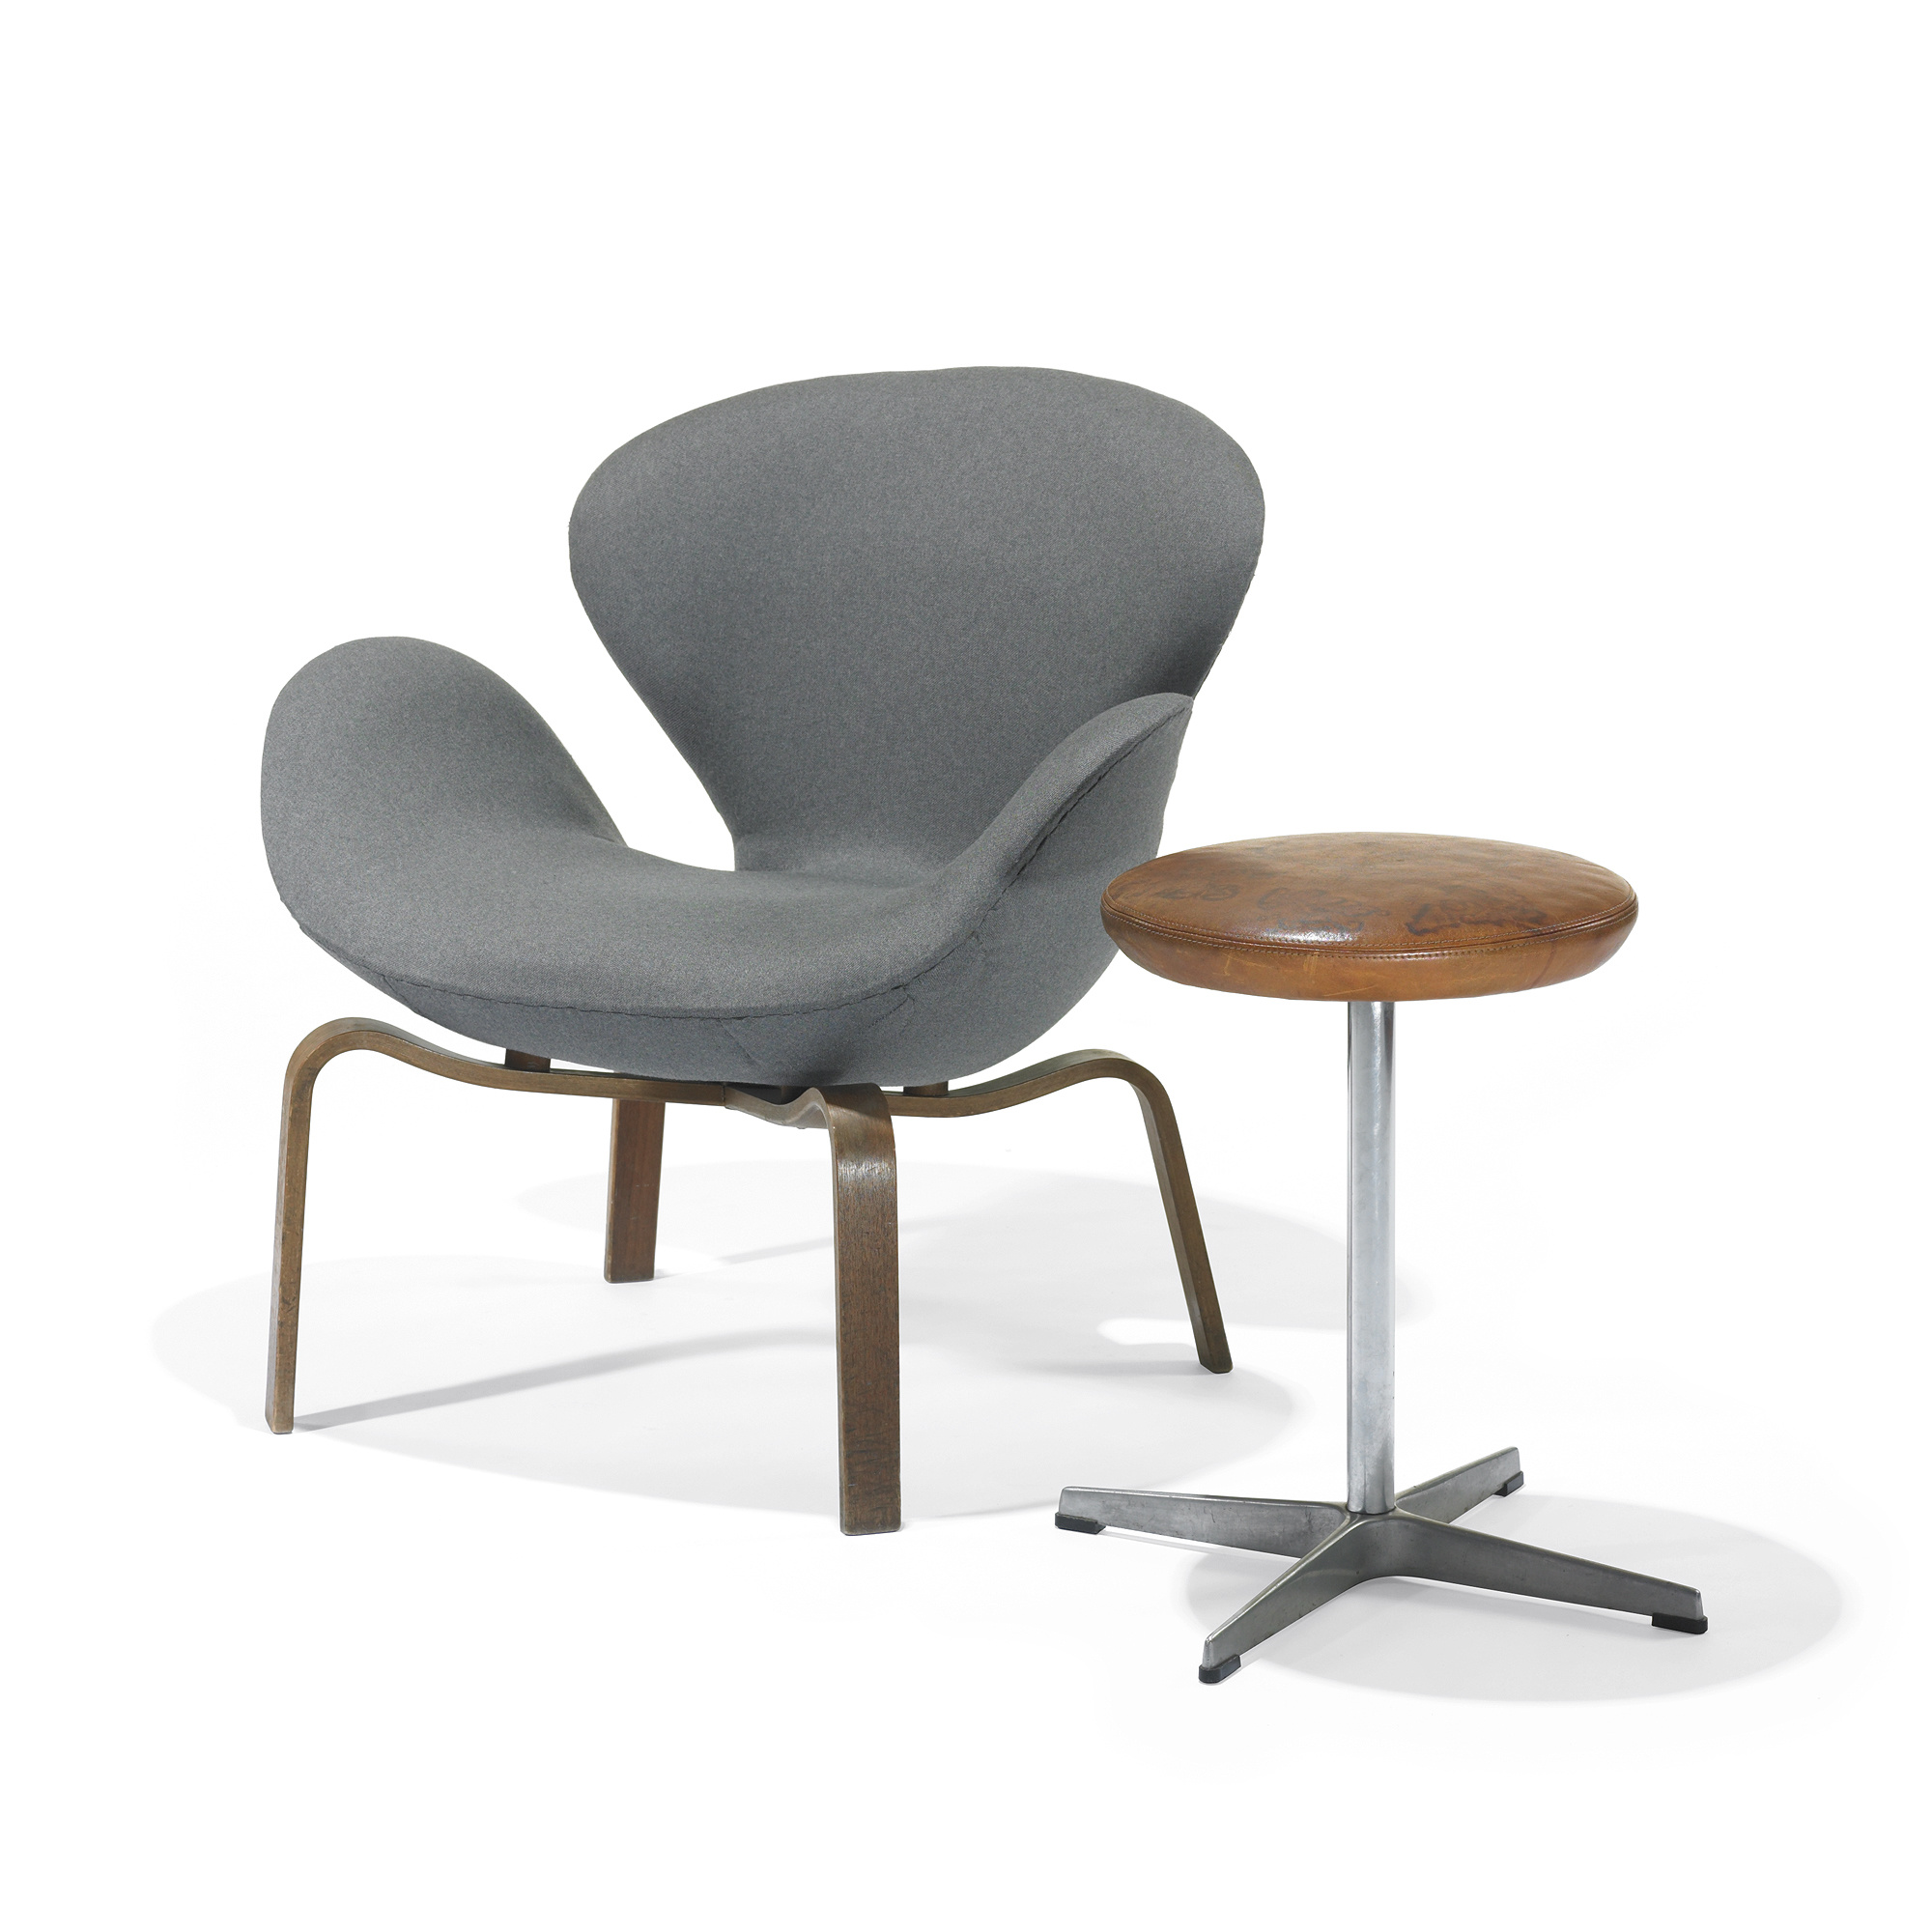 Arne Jacobsen Swan Chair 209: Arne Jacobsen, Swan Chair, Model 4325